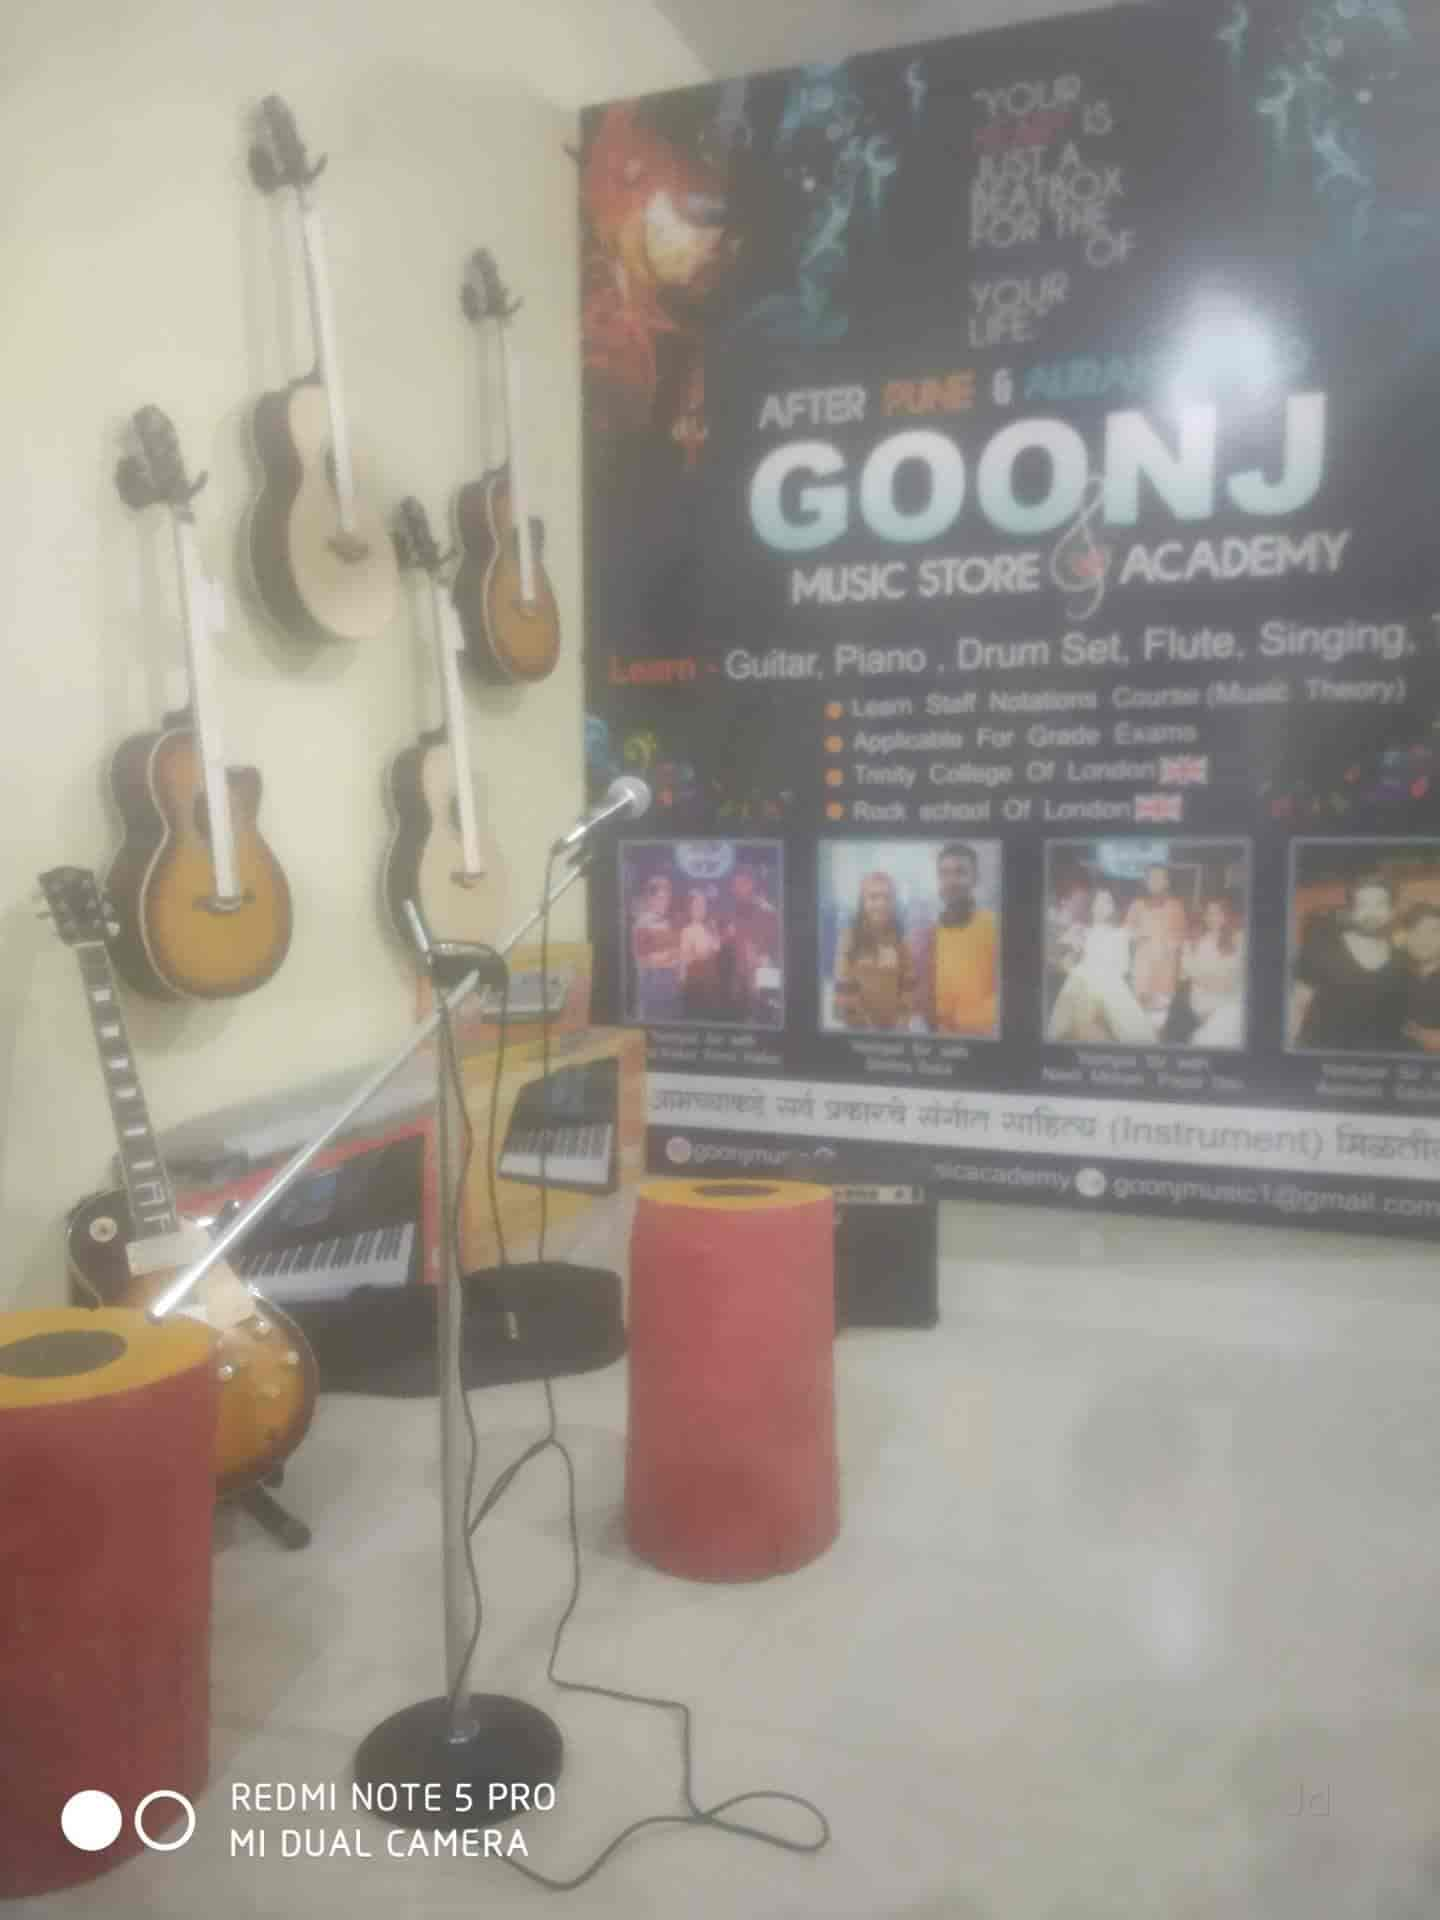 Music Creation Guitar Classes Photos, Datta Nagar, Beed